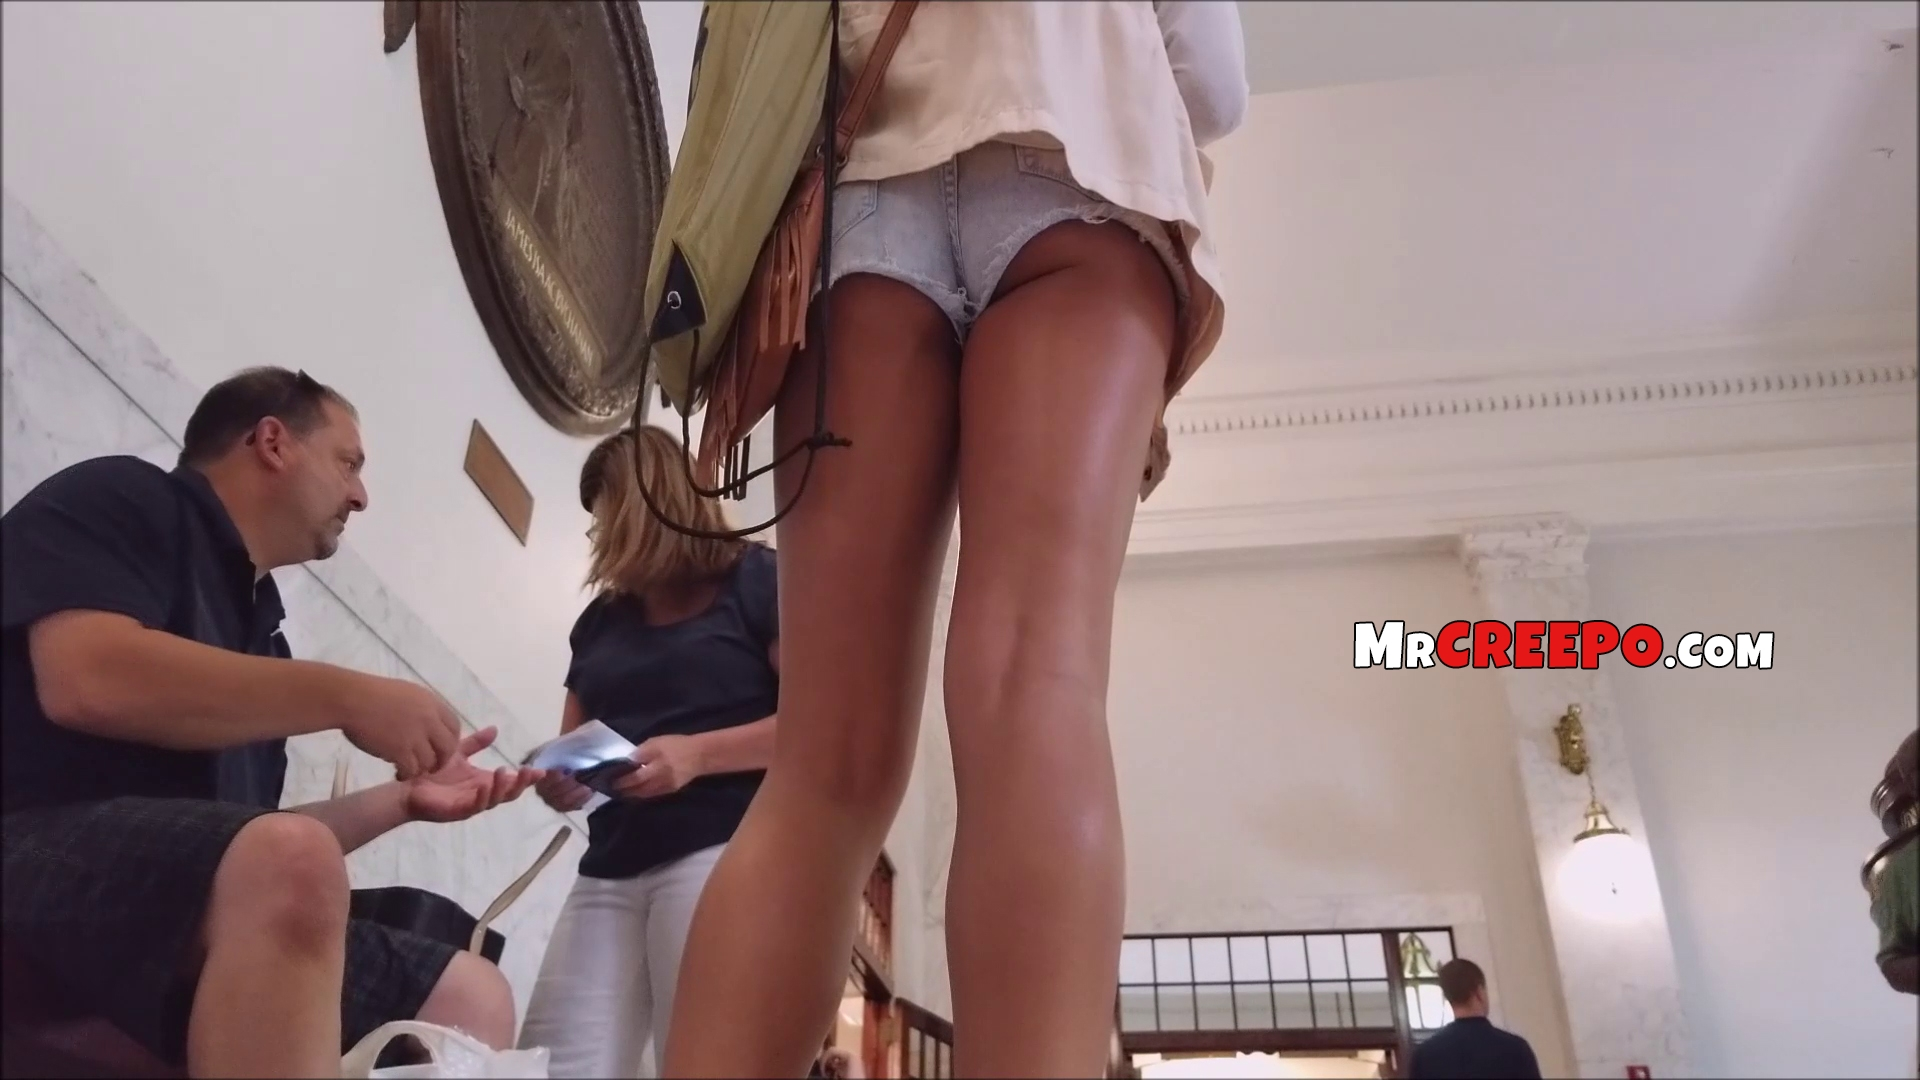 Beautiful ass and tanned long legs caught by voyeur